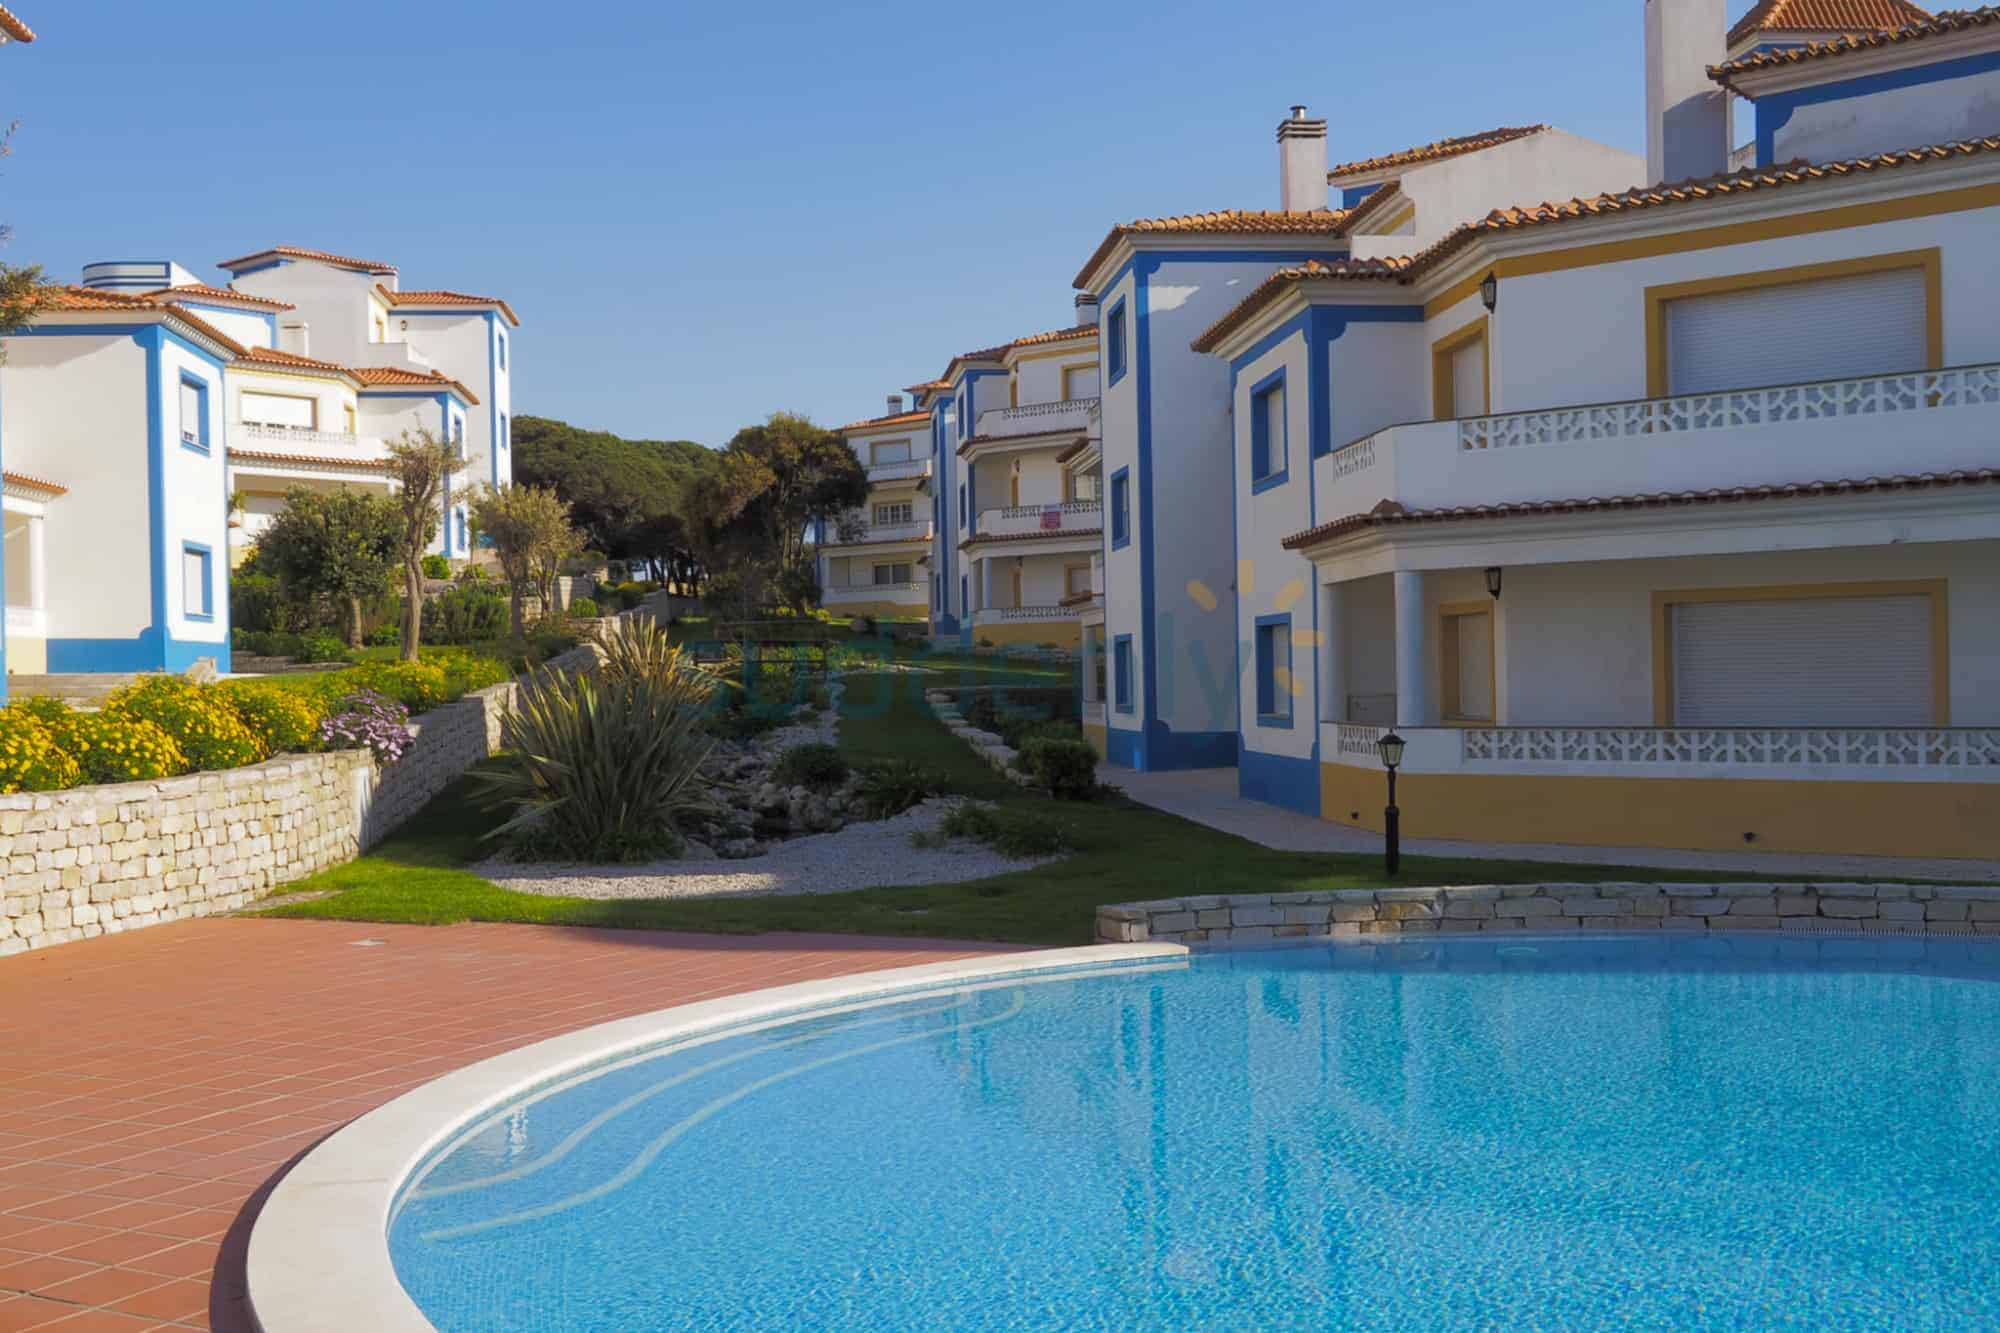 Holiday Rentals in Praia D'El Rey 125